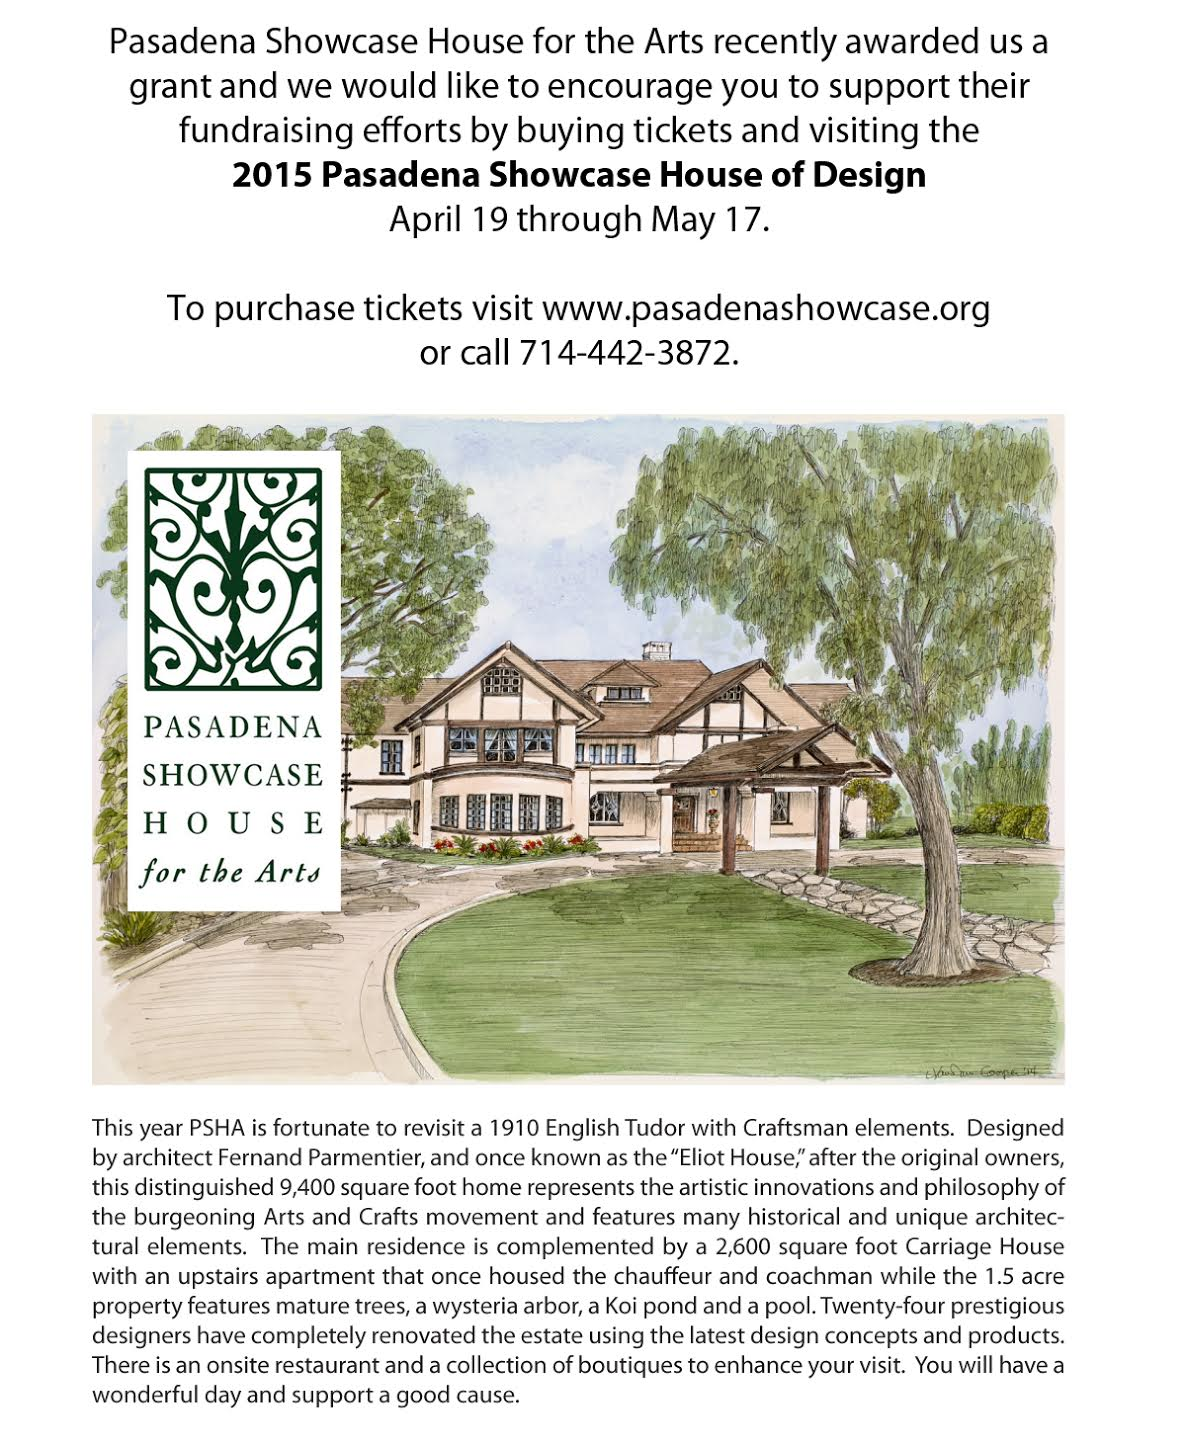 Pasadena Showcase House for the Arts recently awarded the Pasadena Community Orchestra a grant!